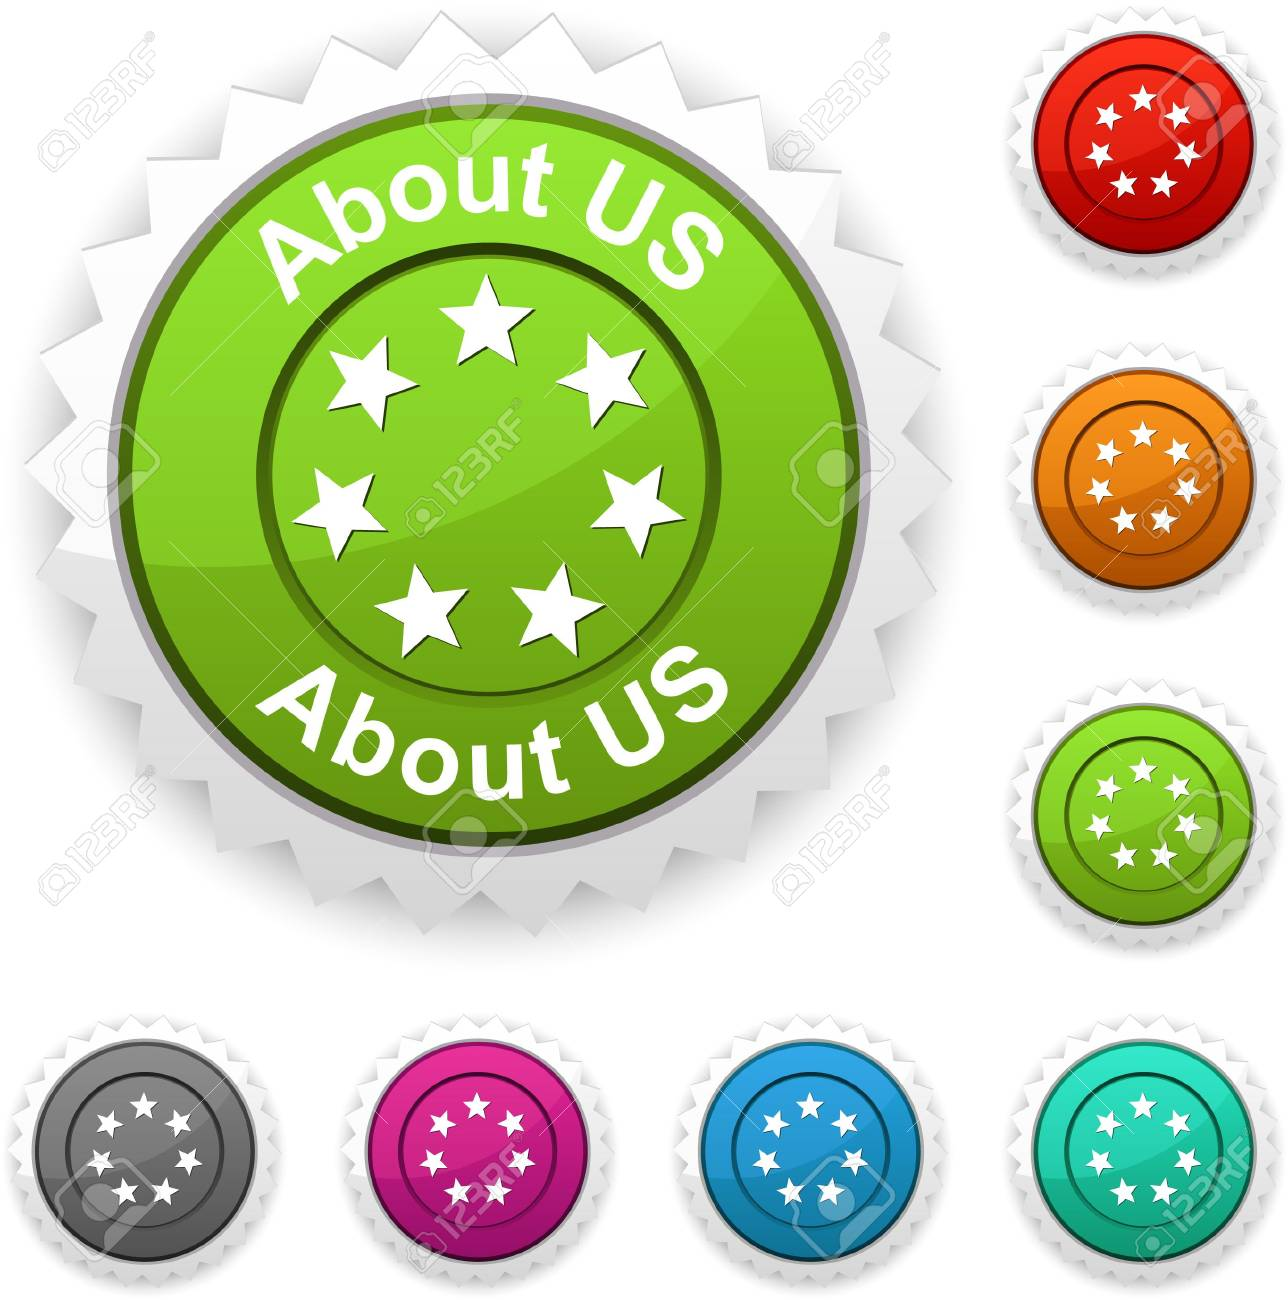 About us  award button. Stock Vector - 6771631